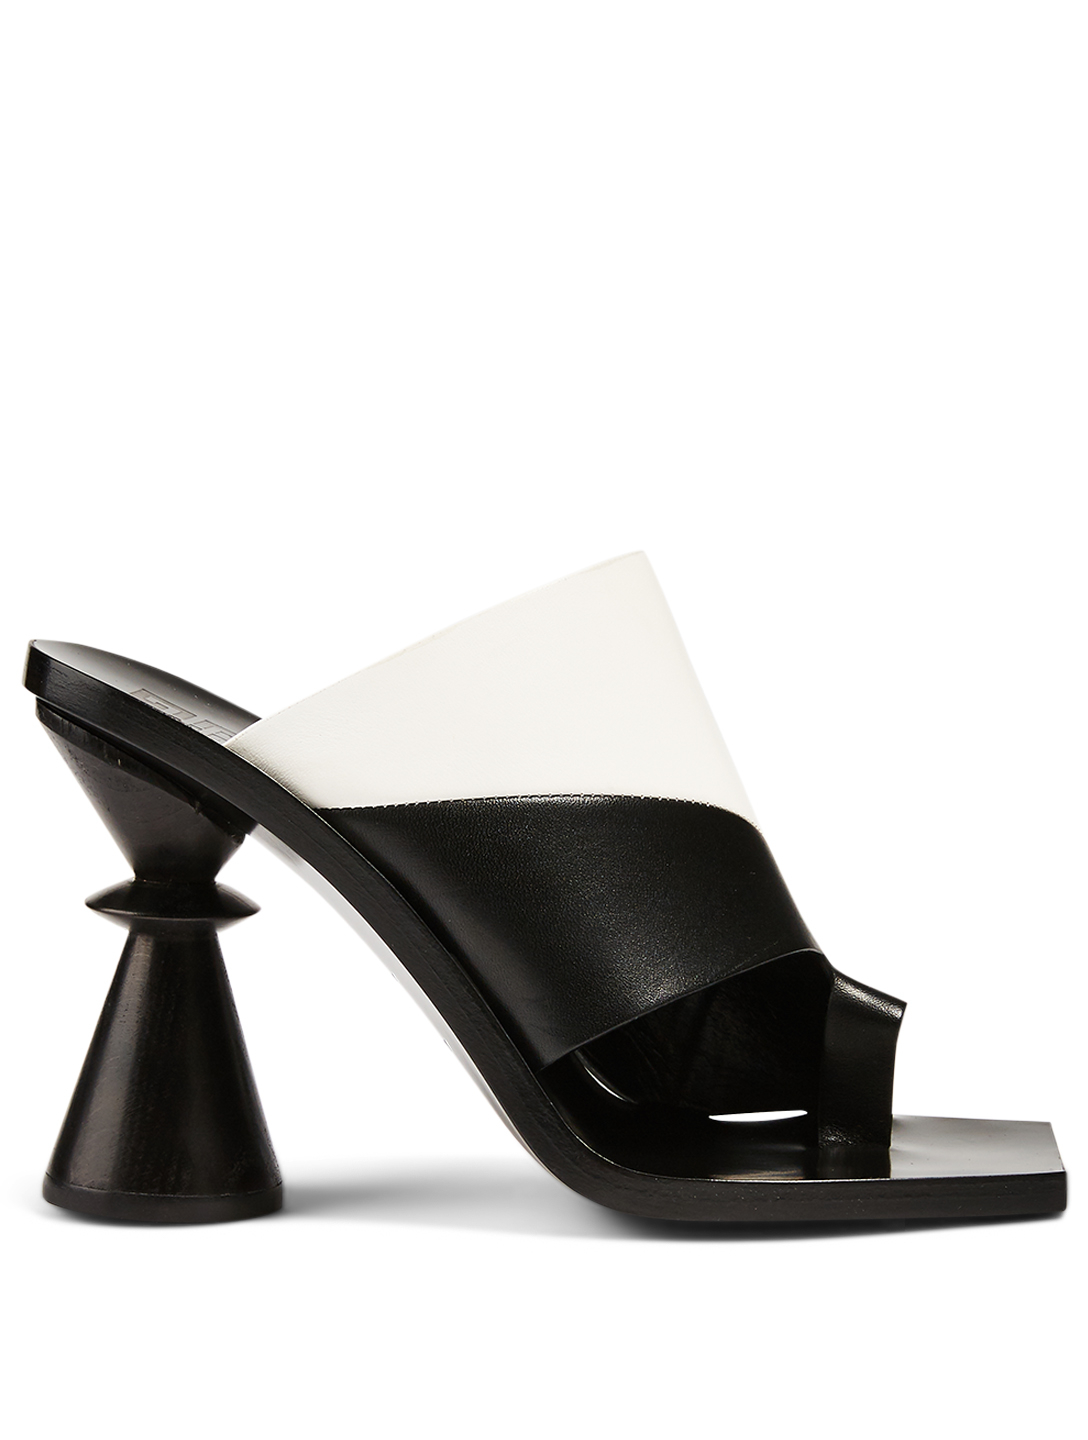 GIVENCHY Joker Bicolour Leather Heeled Mule Sandals Women's Black